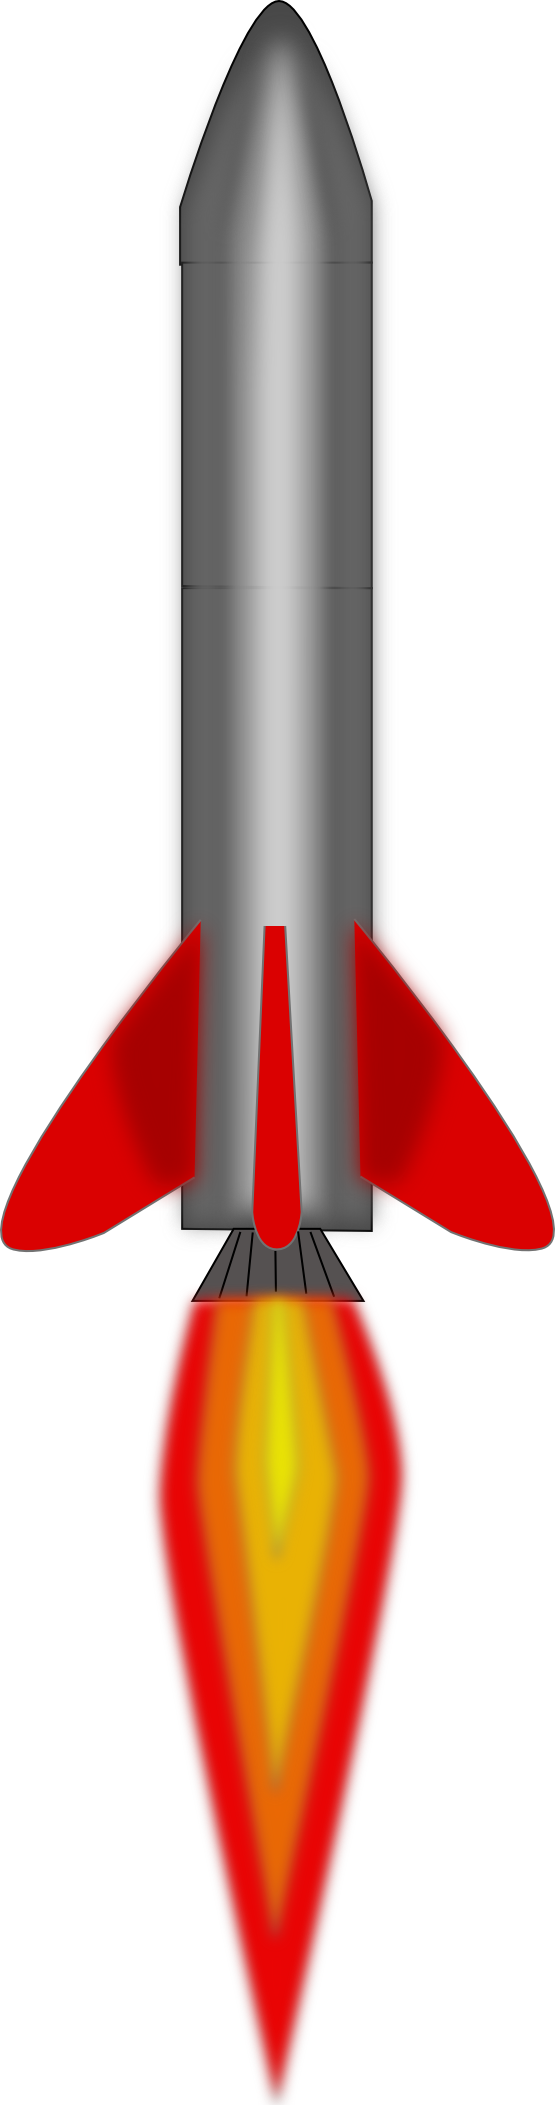 Free to Use Public Domain Missile Clip A-Free to Use Public Domain Missile Clip Art-1